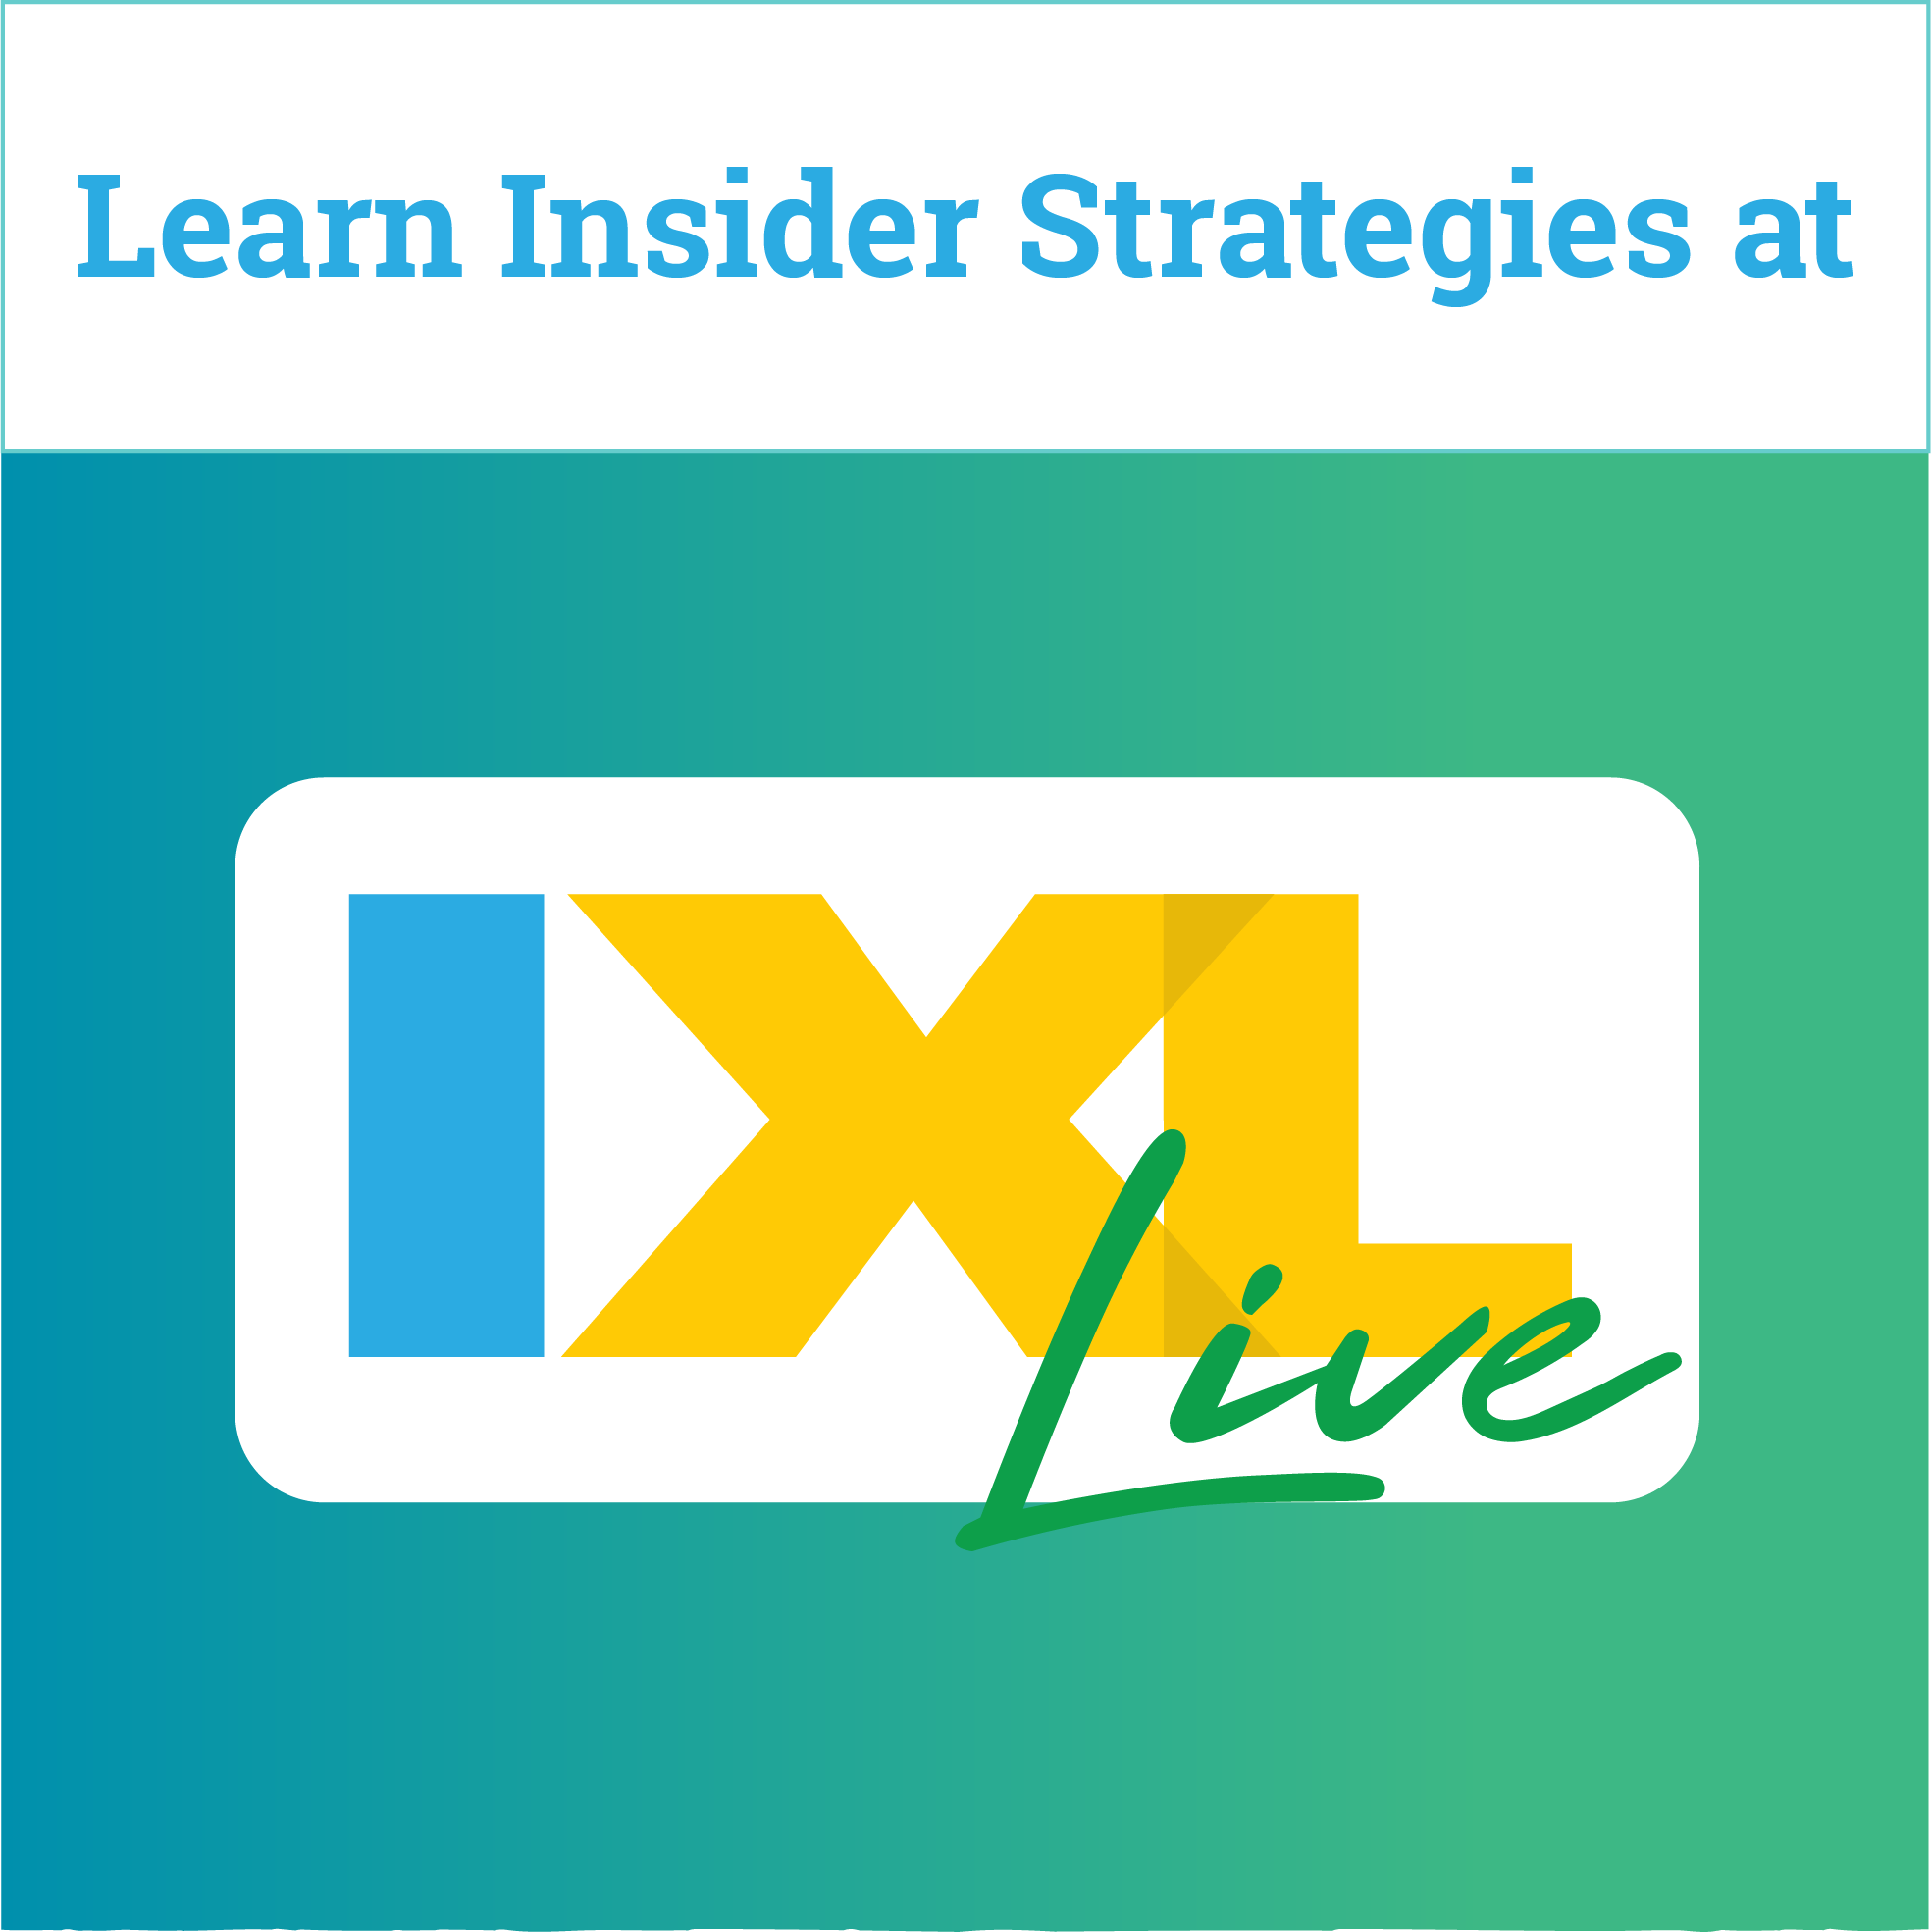 Join us at IXL Live this spring!